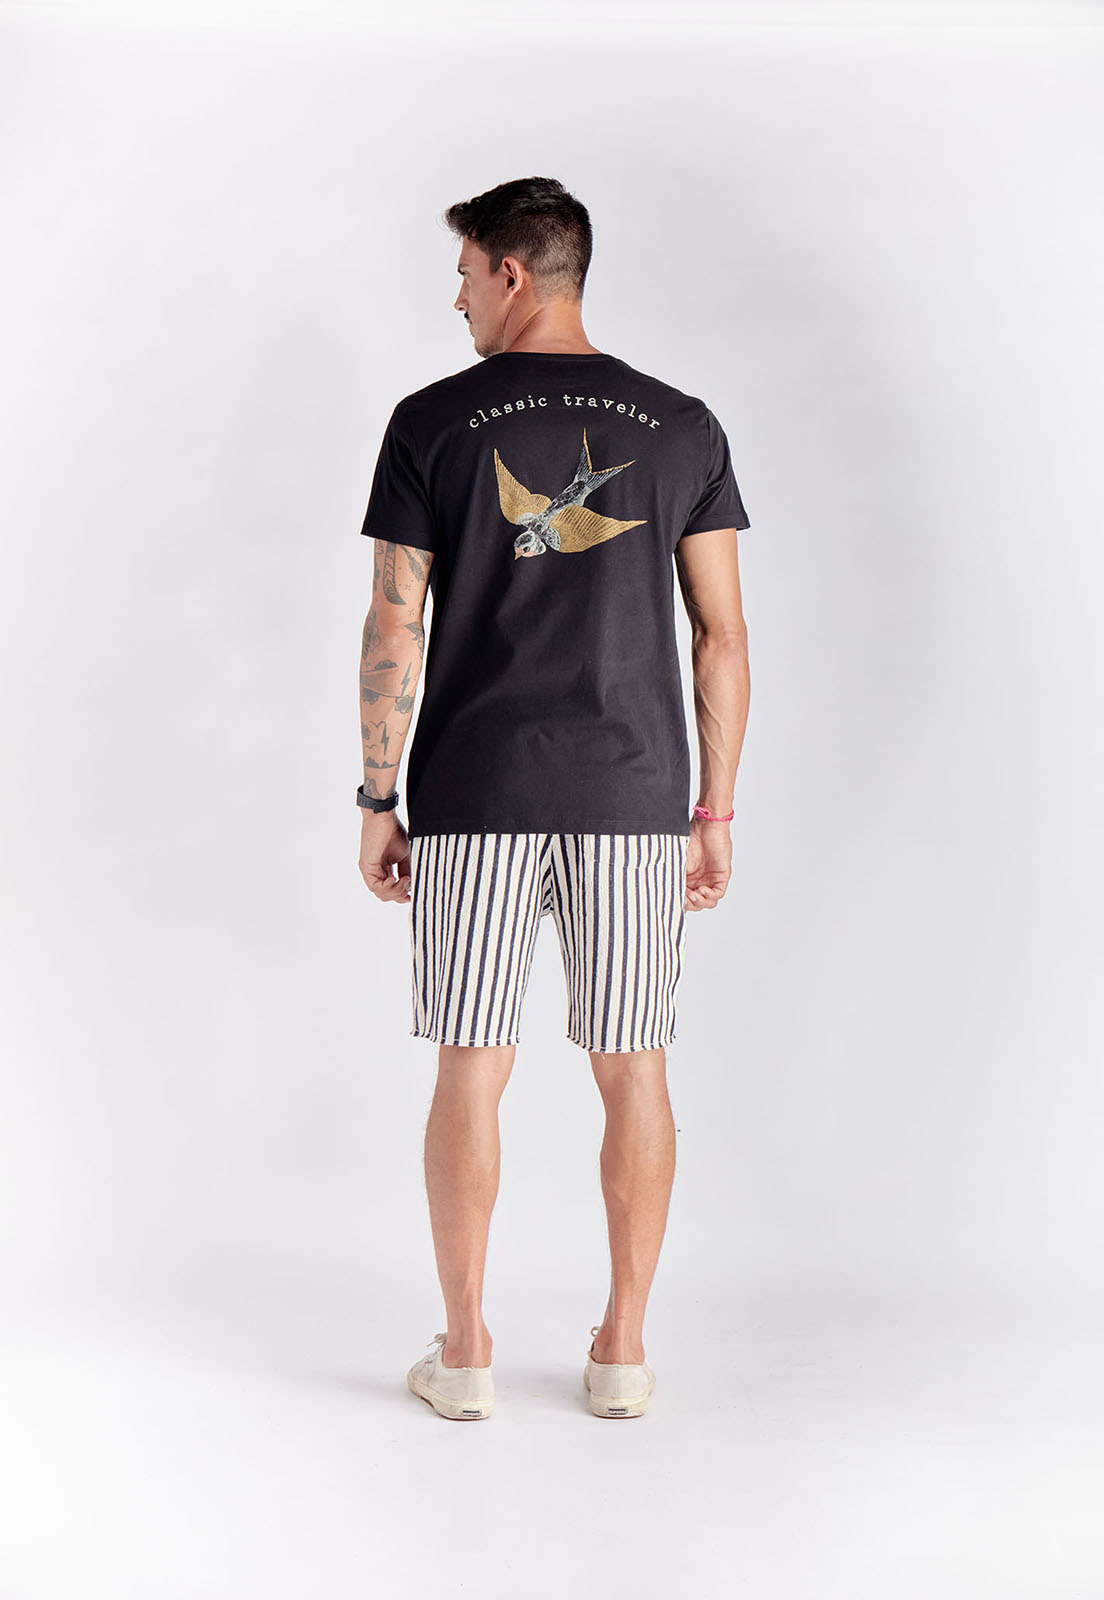 T-shirt Classic Traveler Preto Melty  - melty surf & Co.